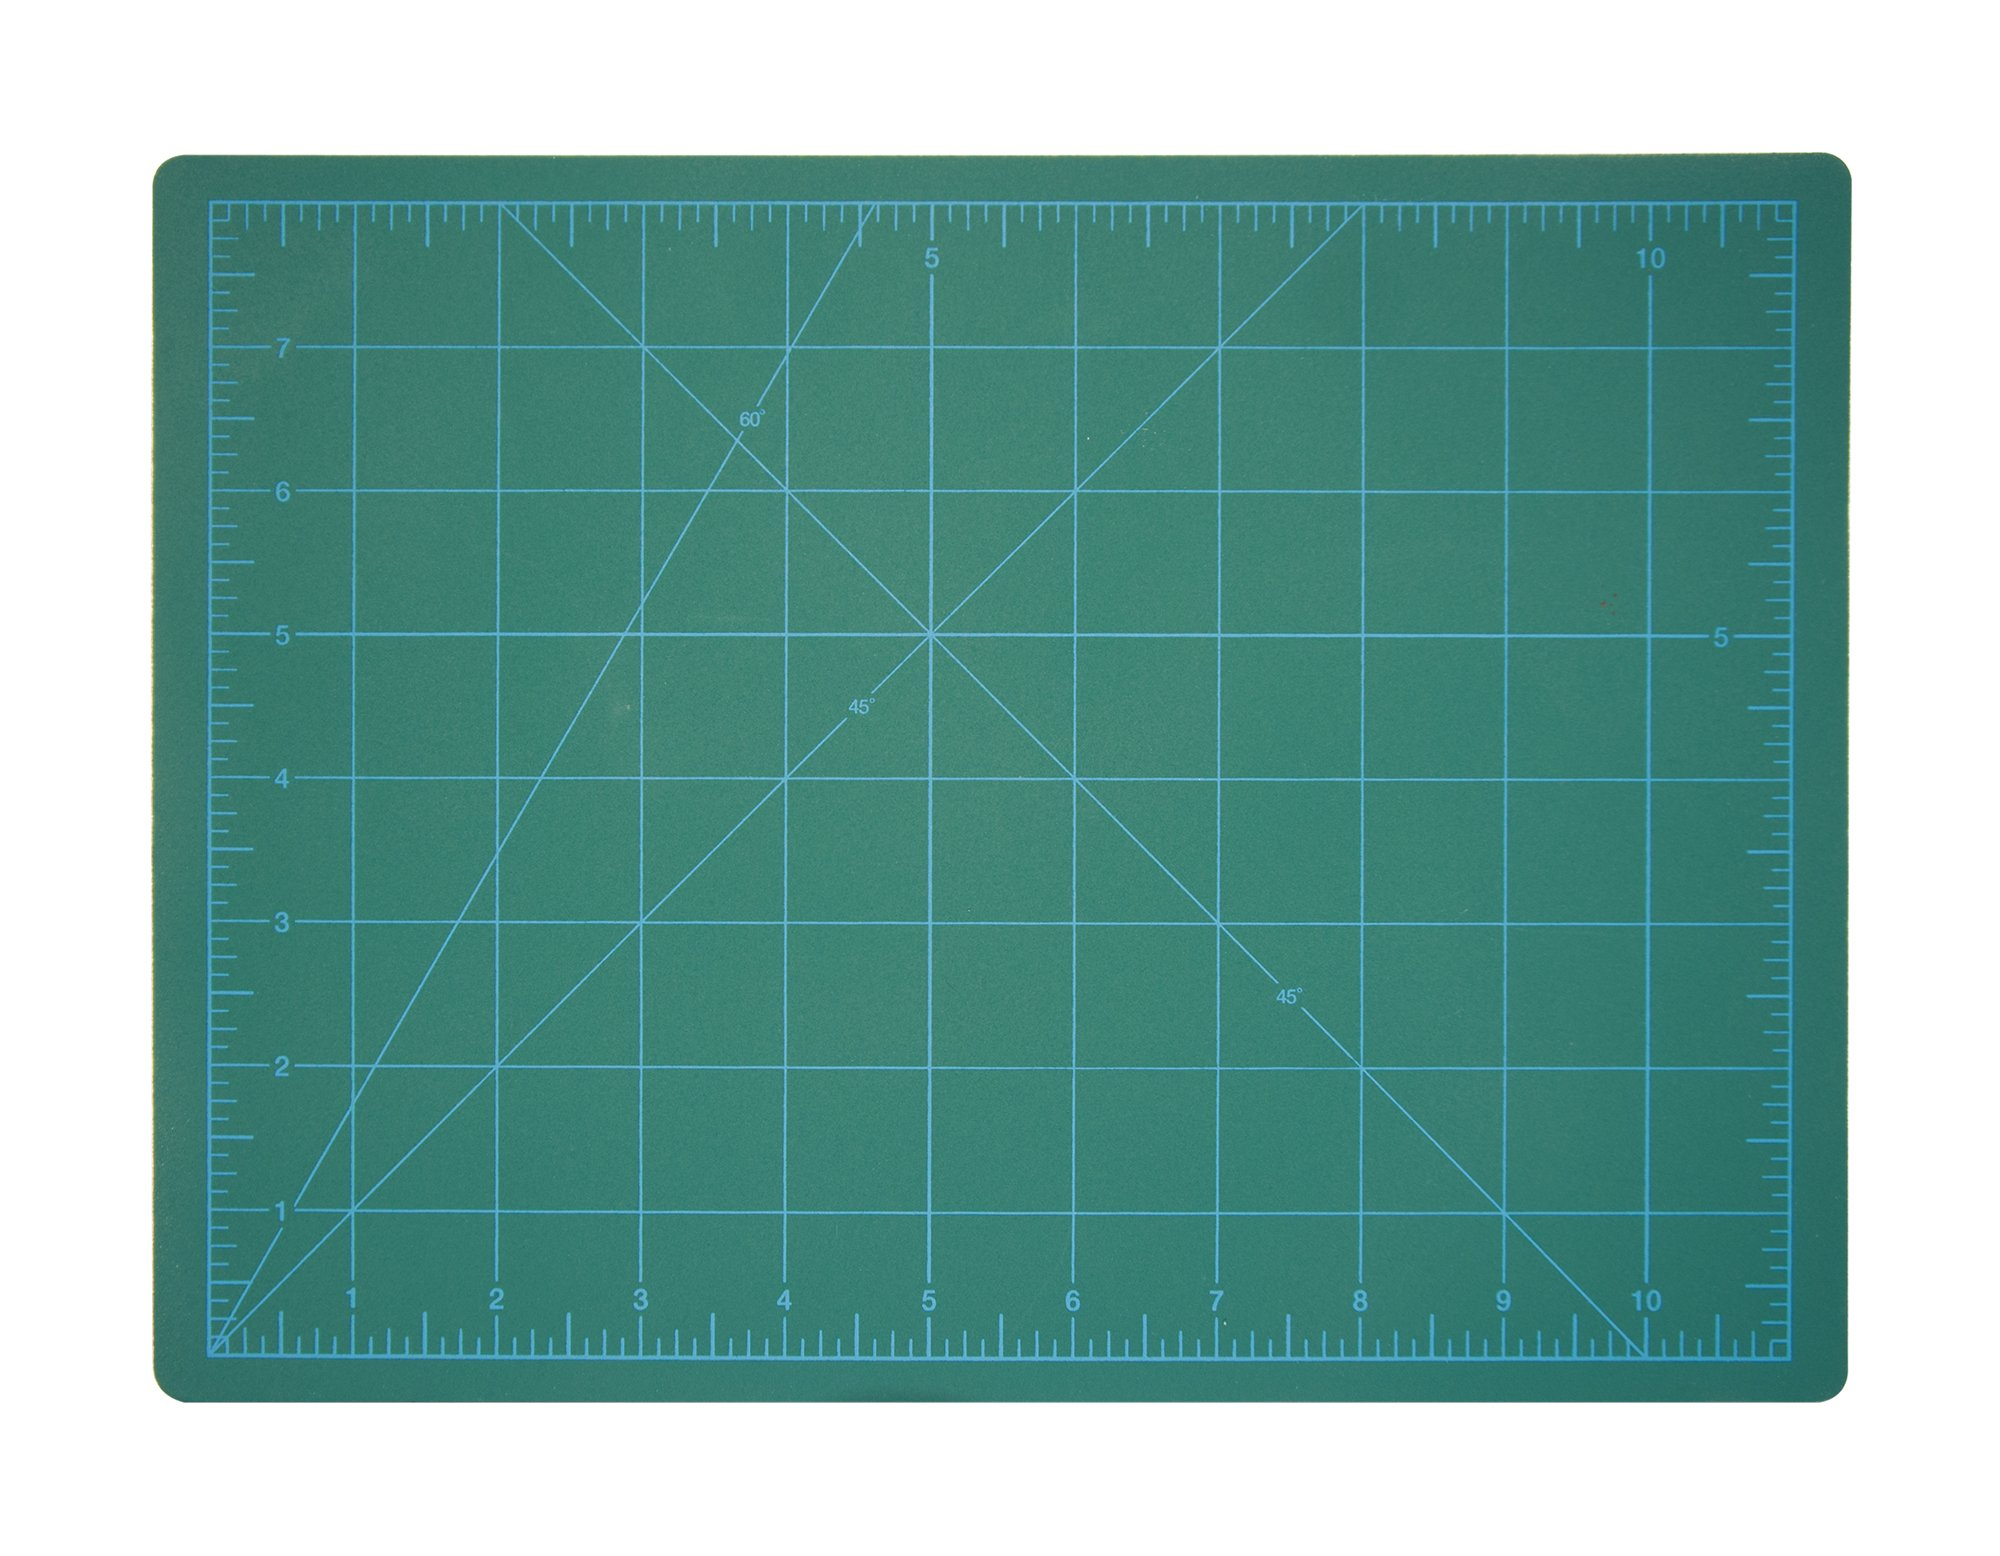 DAFA Professional 36'' x 24'' Self-Healing, Double-Sided Cutting Mat, Rotary Blade Compatible, (36x24), (24x18), (18x12), (12x9) Sizes, for Sewing, Quilting, Arts & Crafts by DAFA (Image #4)